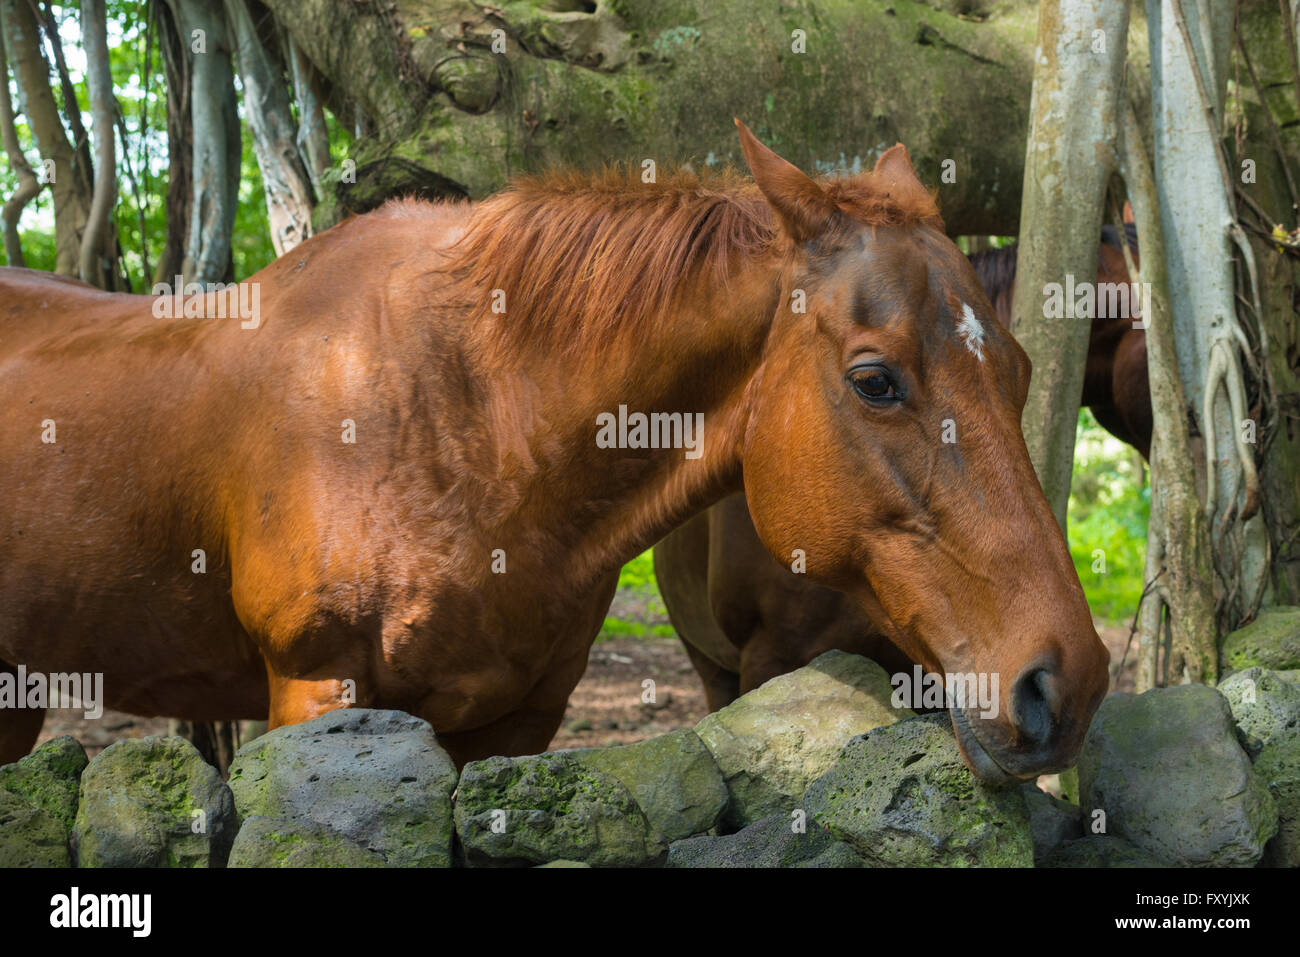 Horse, Equus ferus, standing with its head over a lava rock wall on the Hawaiian island of Maui, USA. Stock Photo